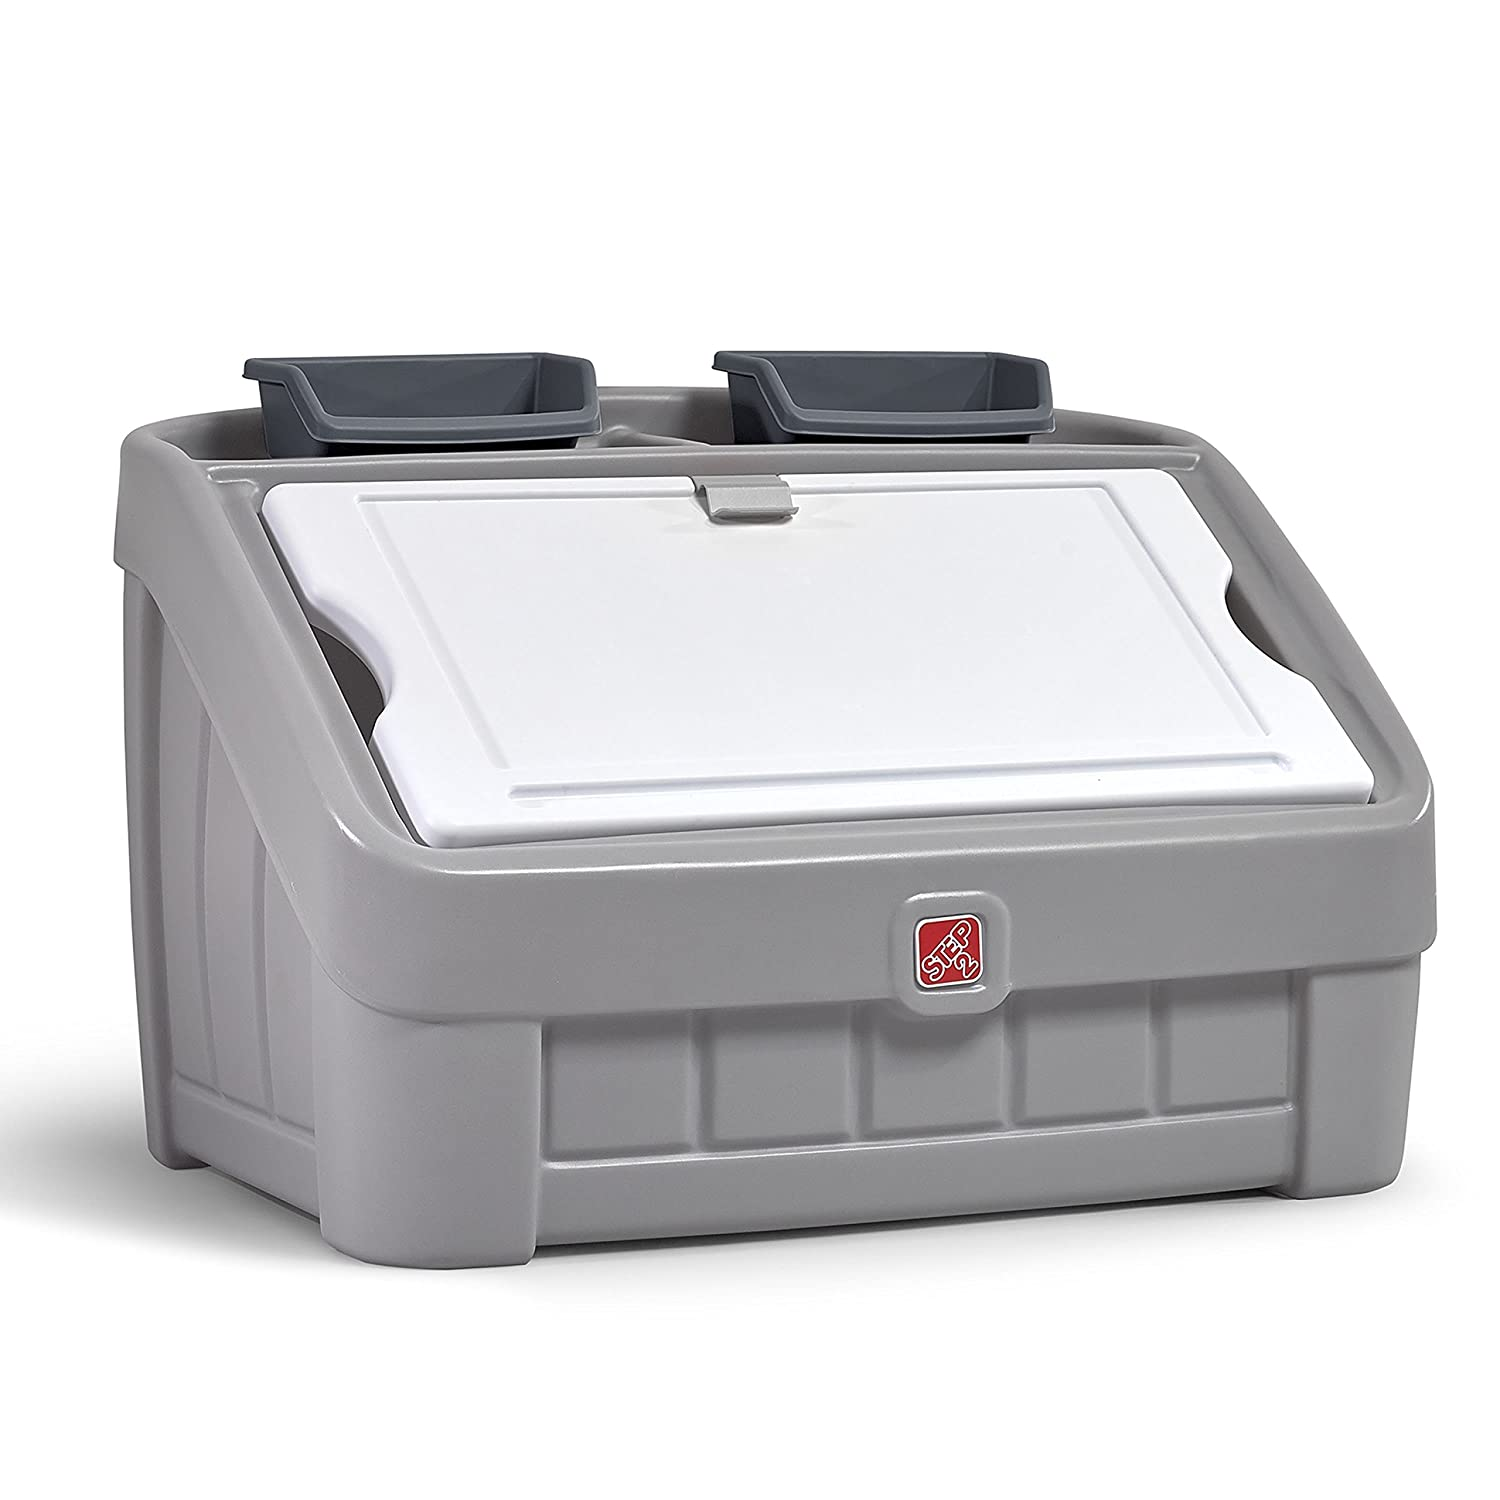 B07C7266YK Step2 2-in-1 Toy Box & Art Lid | Plastic Toy & Art Storage Container, Grey 81lx0wzDZRL